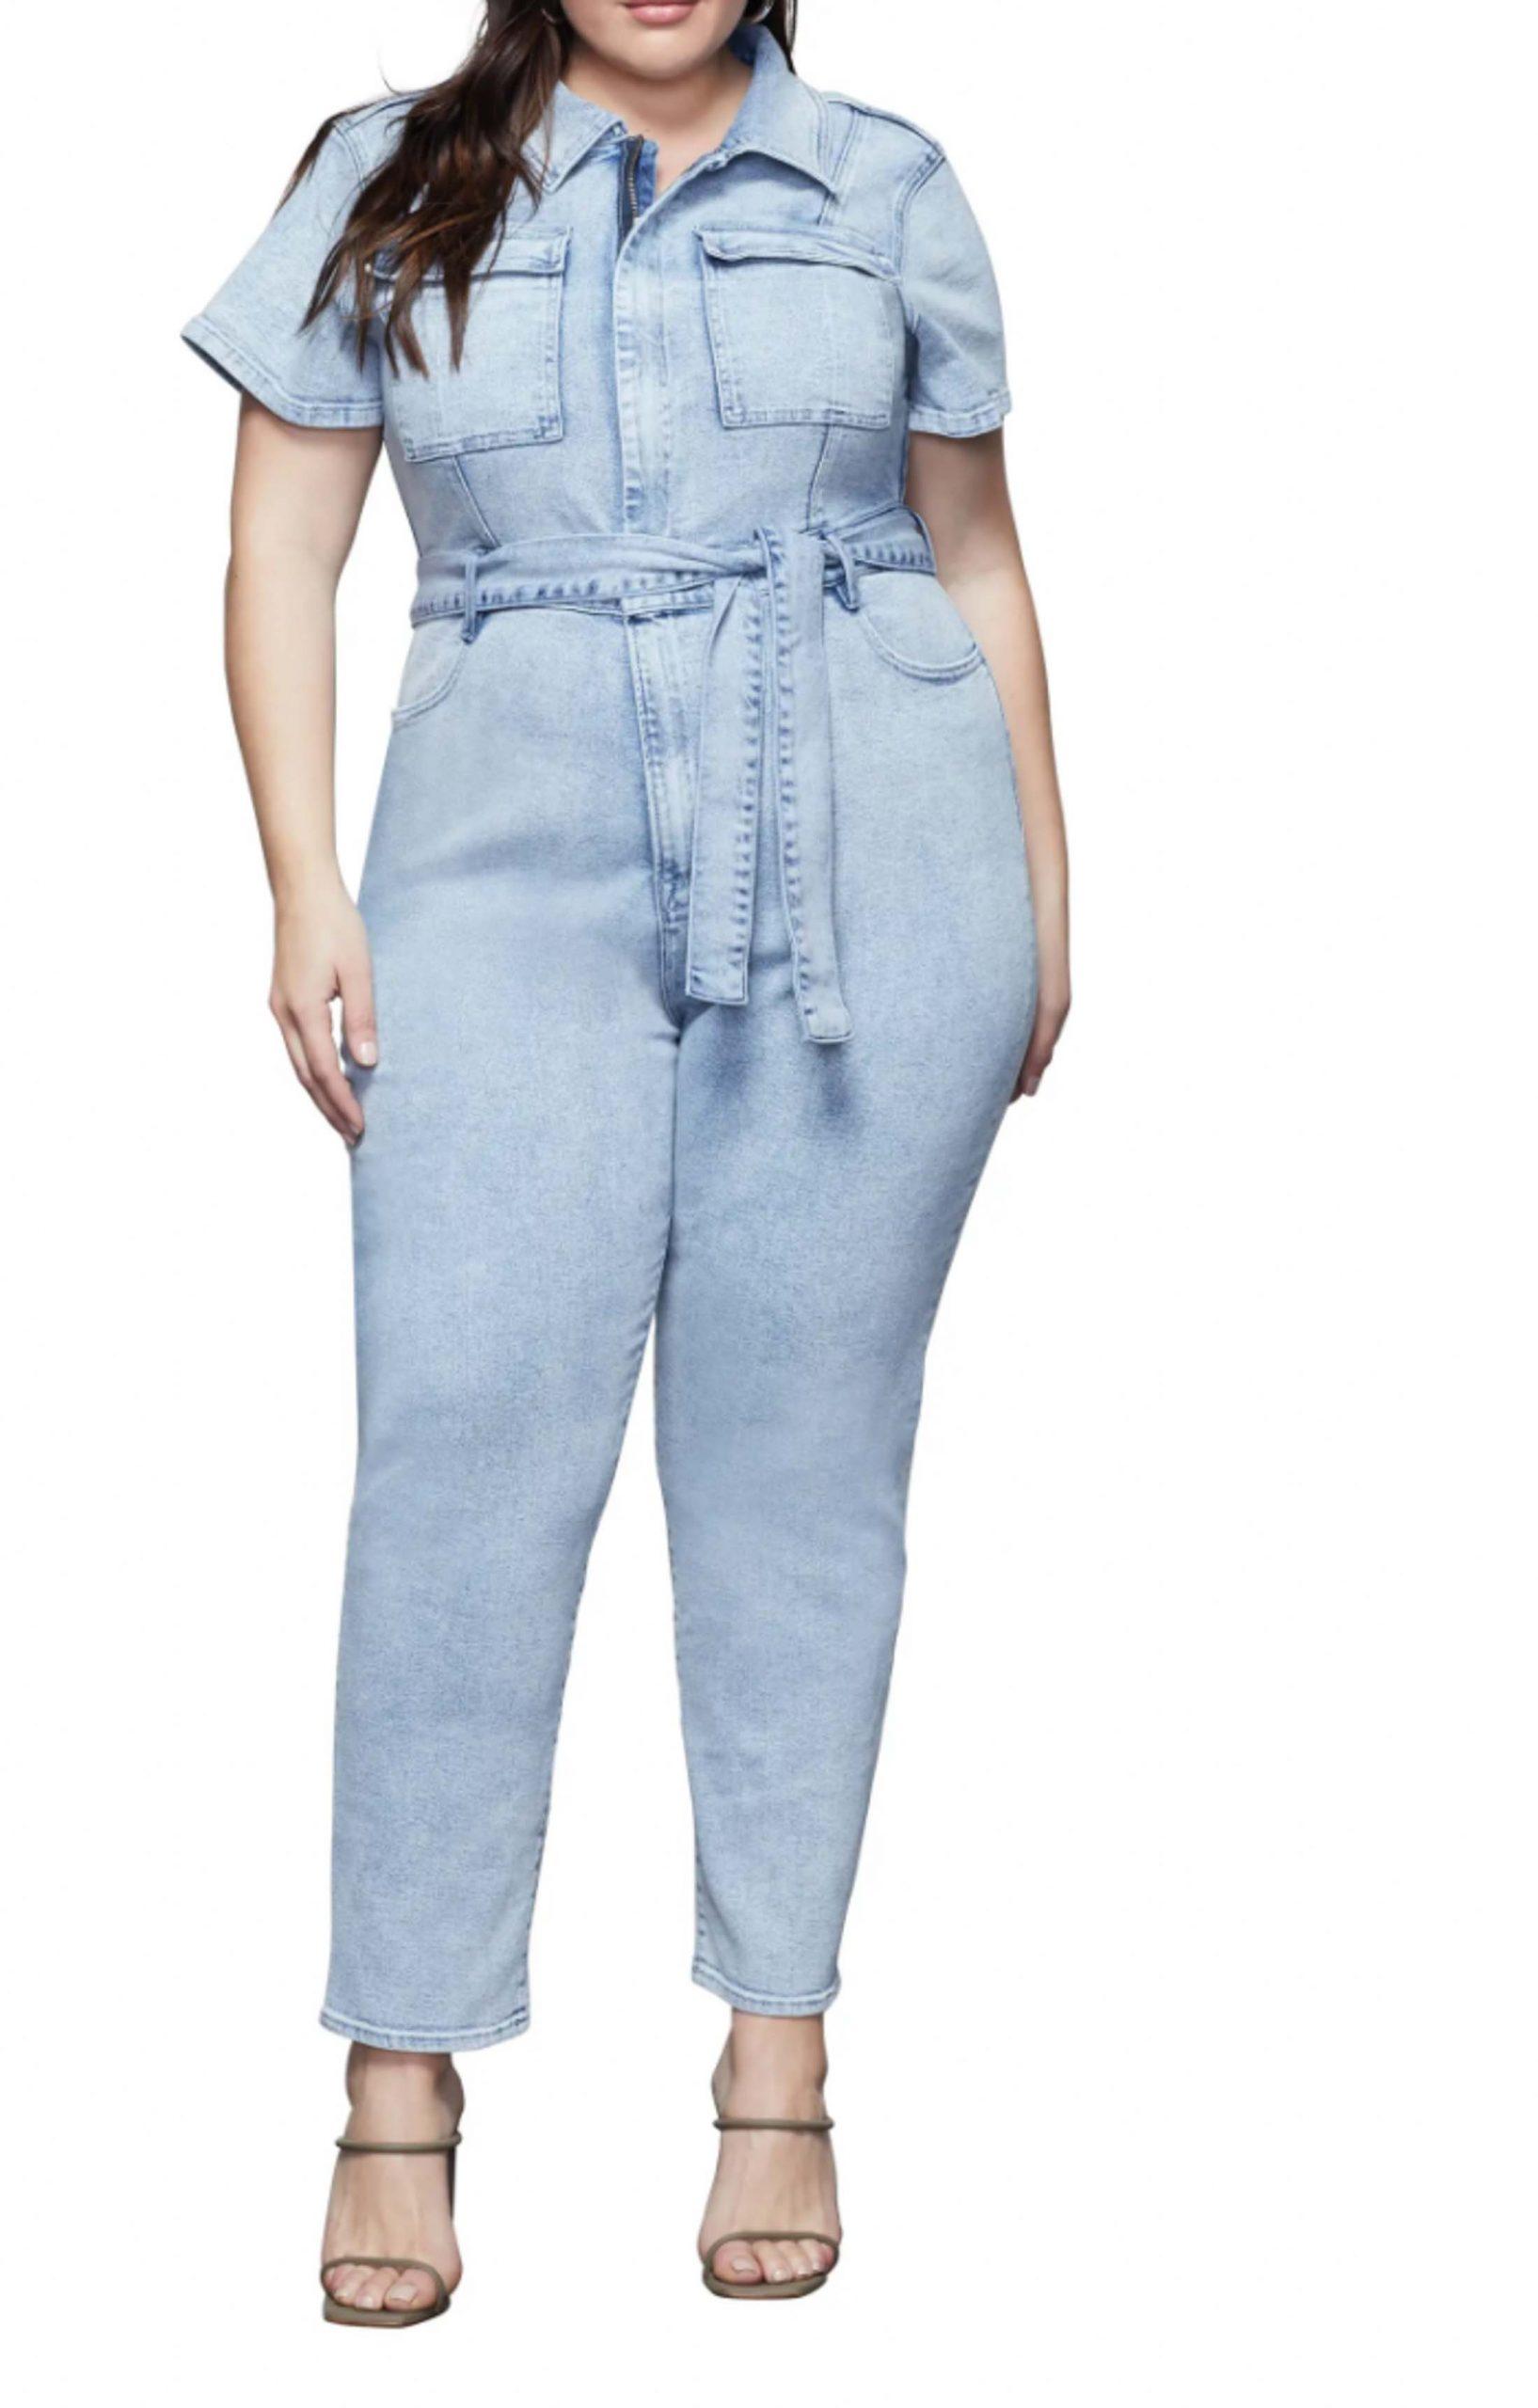 I am hoping that this Good American jumpsuit will fit because I think she is super sexy!